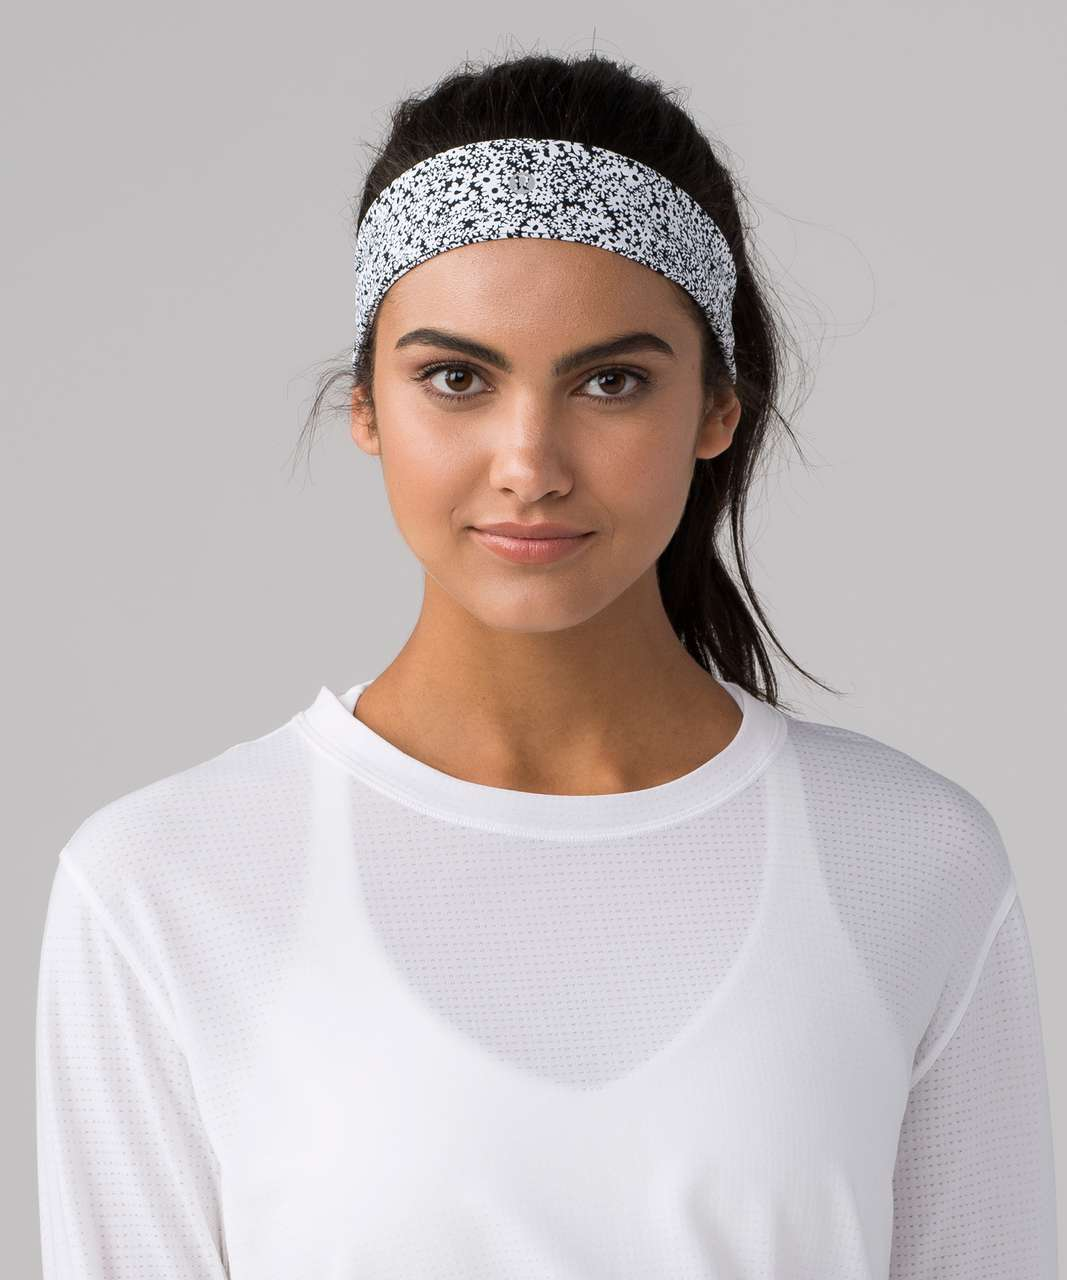 Lululemon Fly Away Tamer Headband II (Luxtreme) - Ditsy Daisy White Black -  lulu fanatics d70e147cd7d